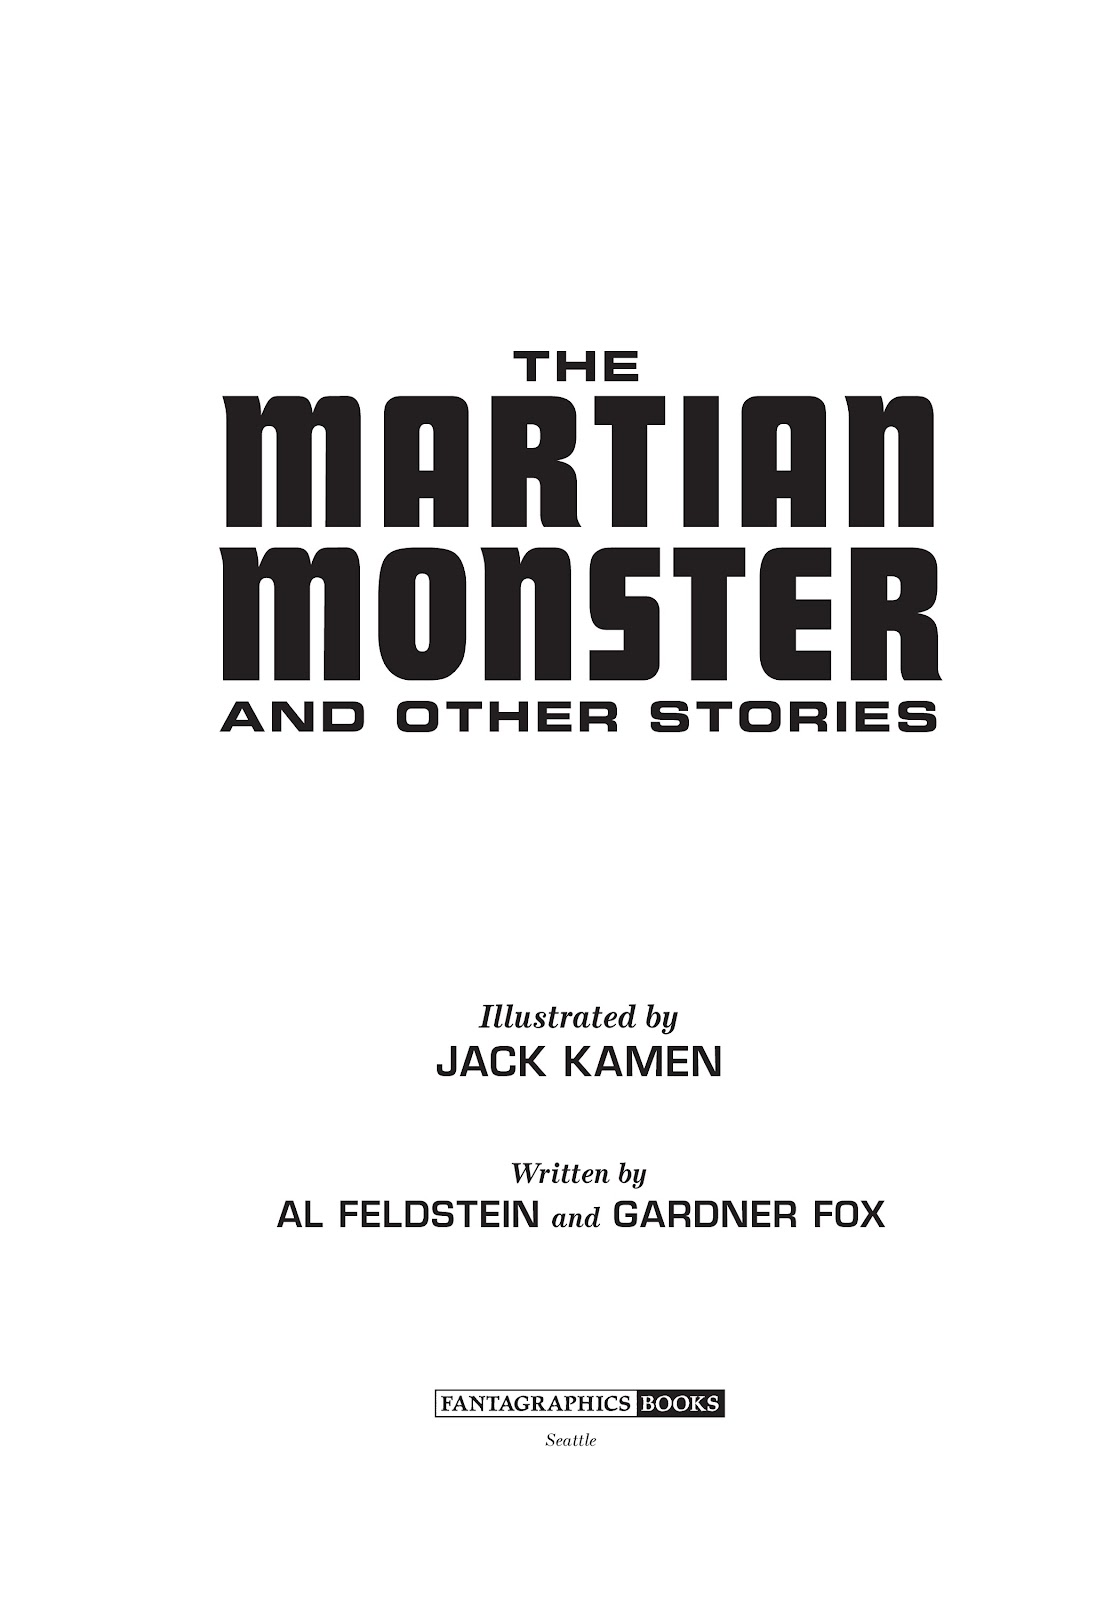 Read online The Martian Monster and Other Stories comic -  Issue # TPB (Part 1) - 4